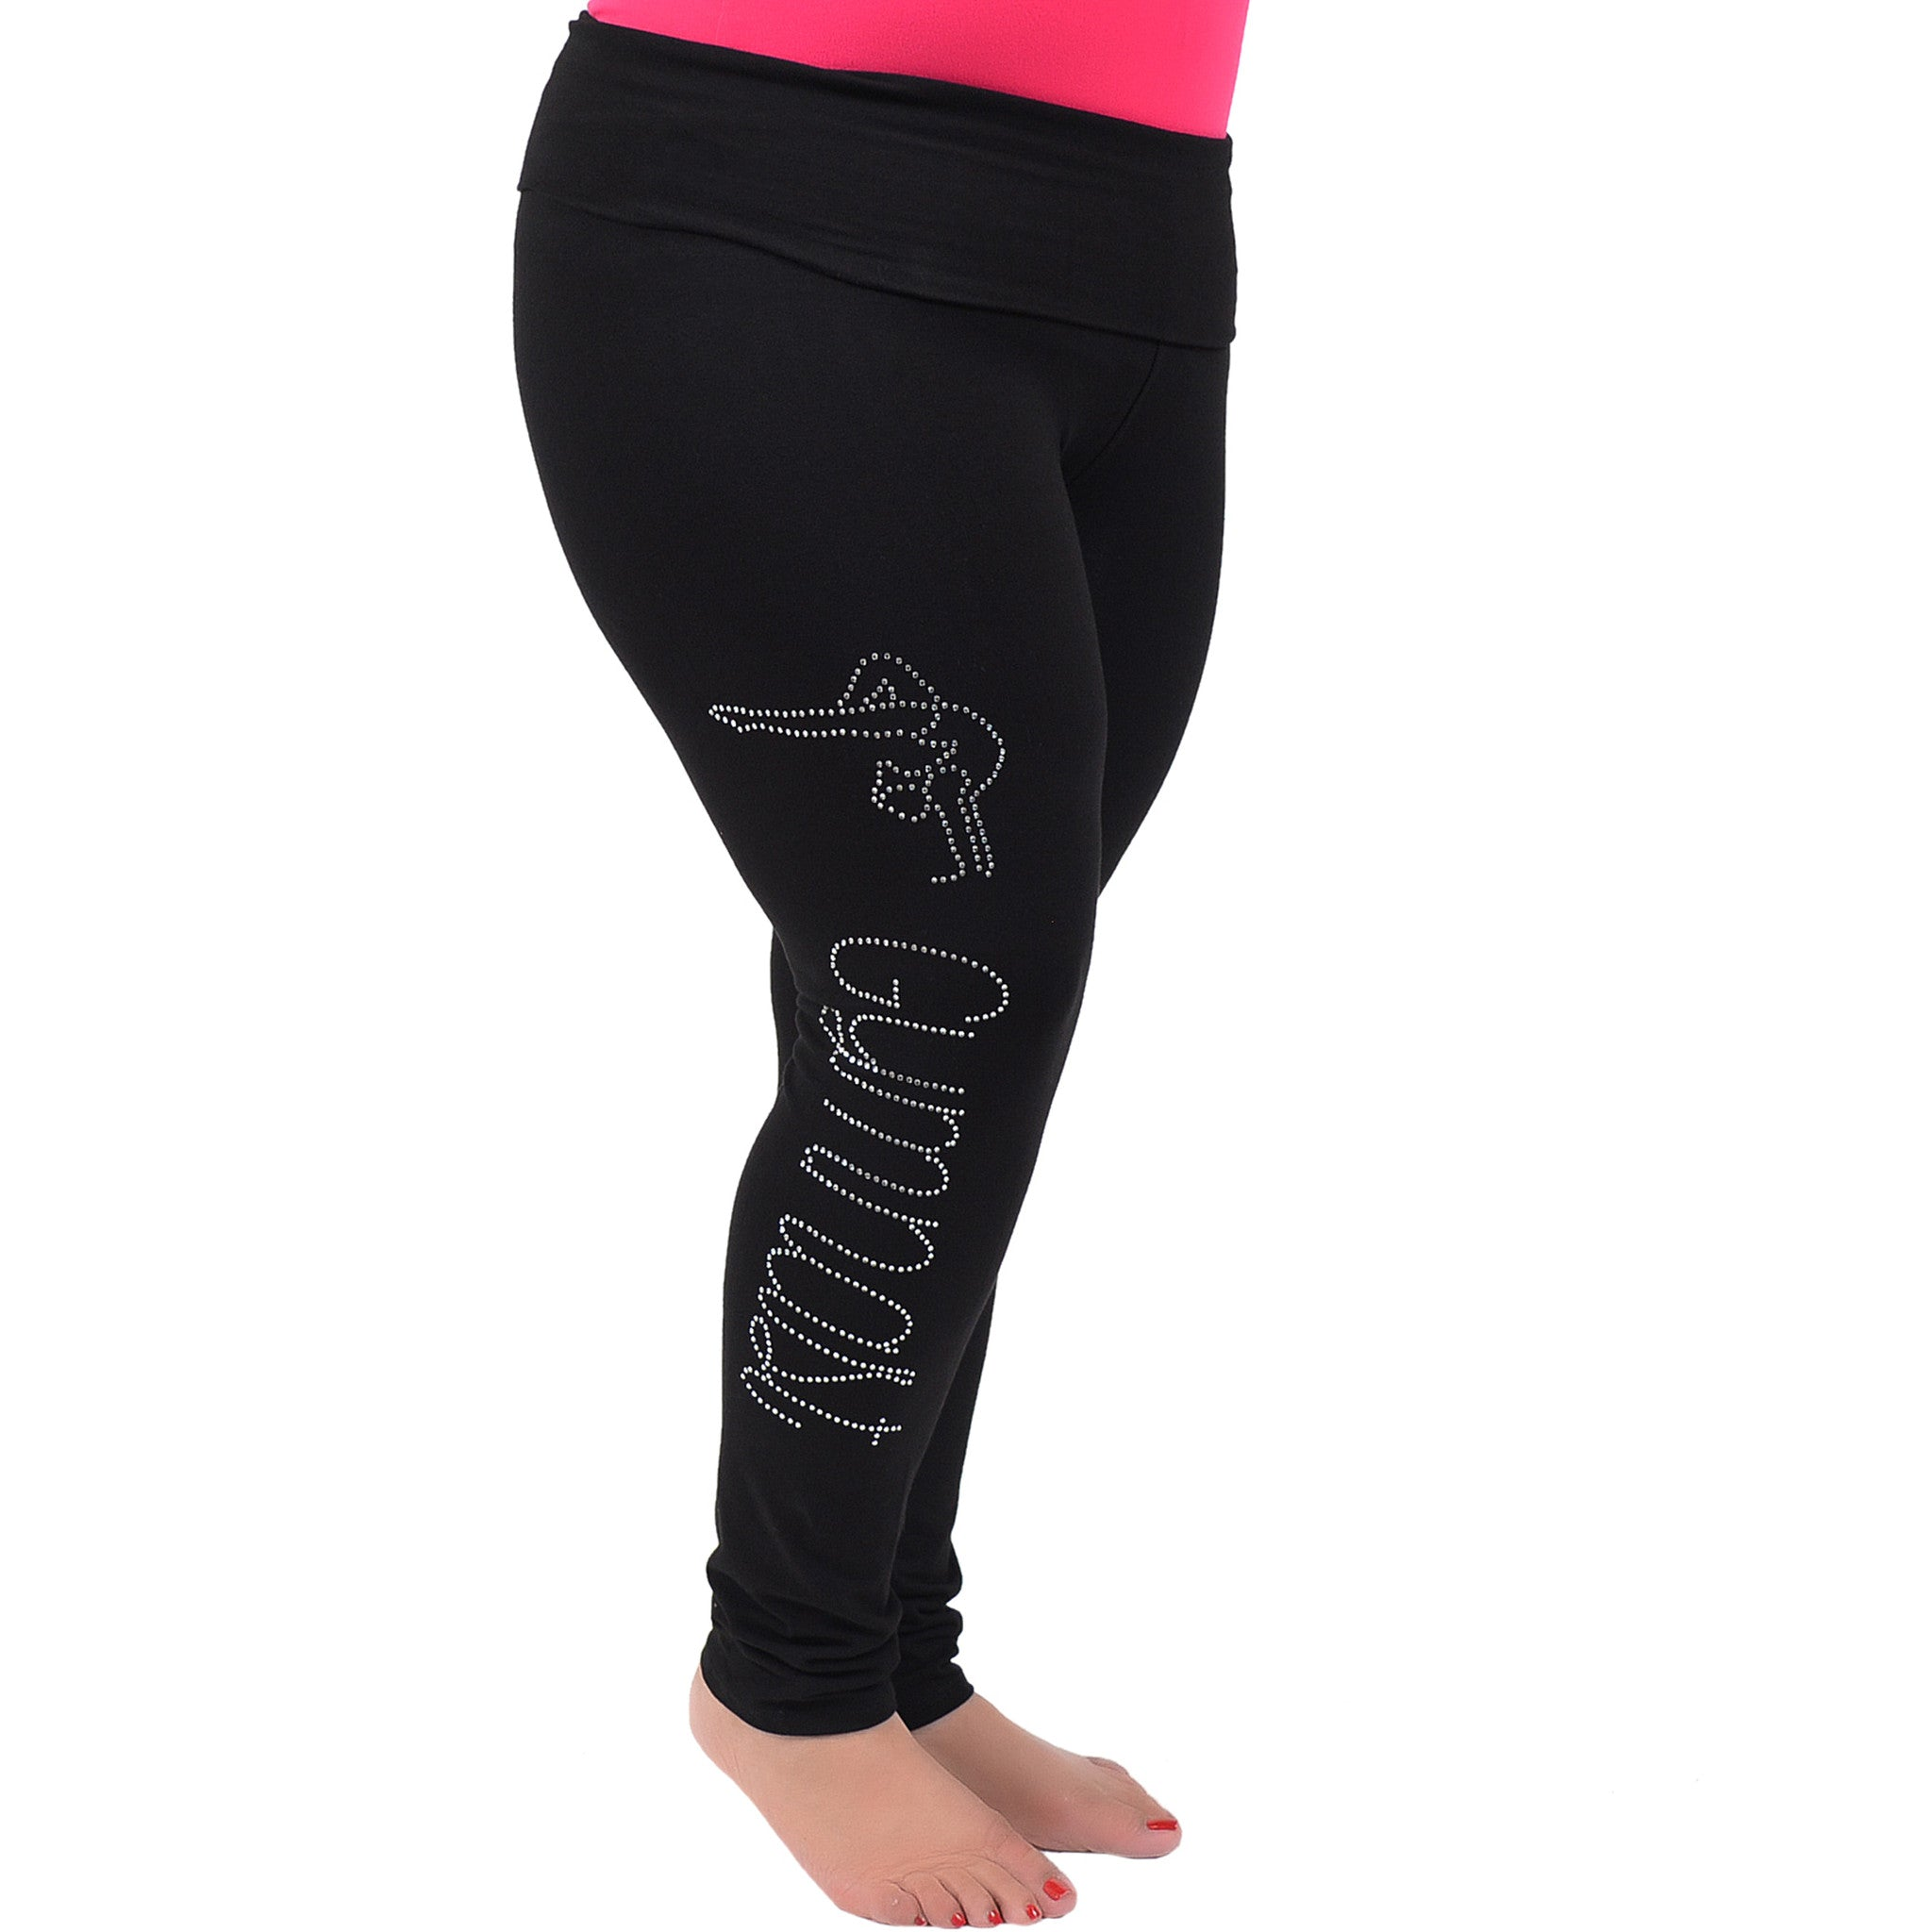 Plus Size Gymnastics Rhinestone Foldover Cotton Leggings